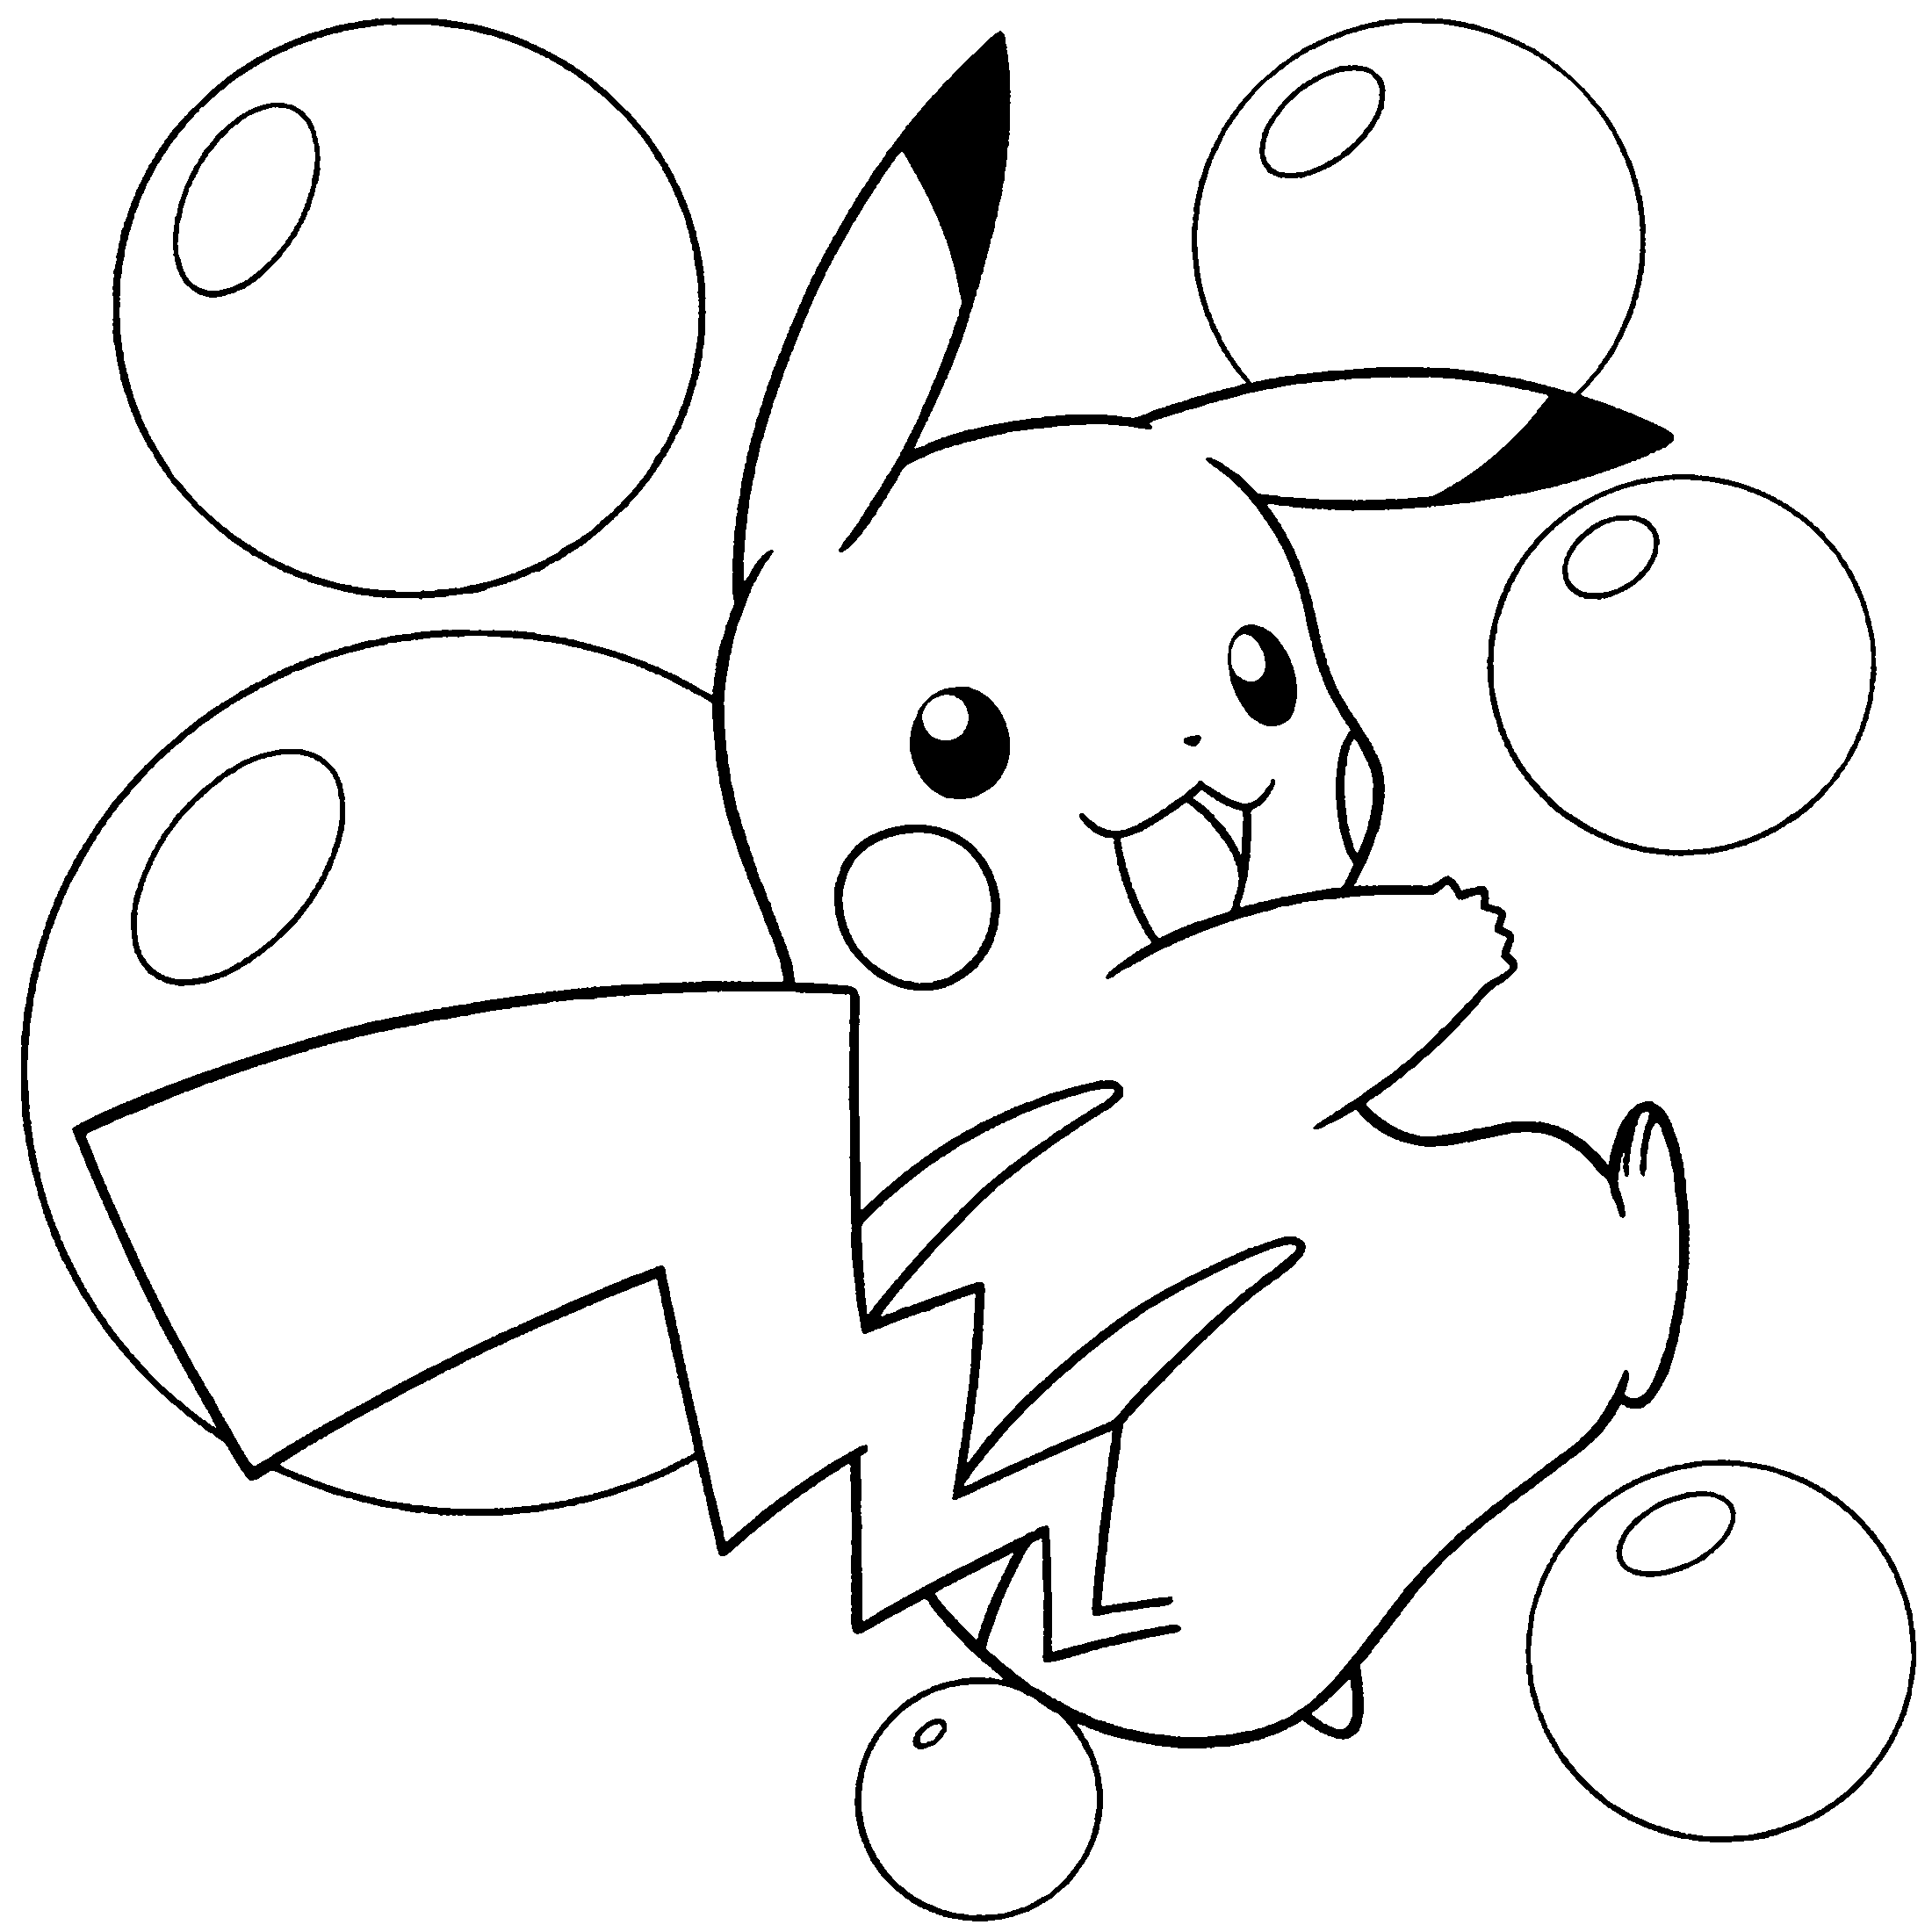 pokemon coloring pages (1) coloring kids - coloring kids